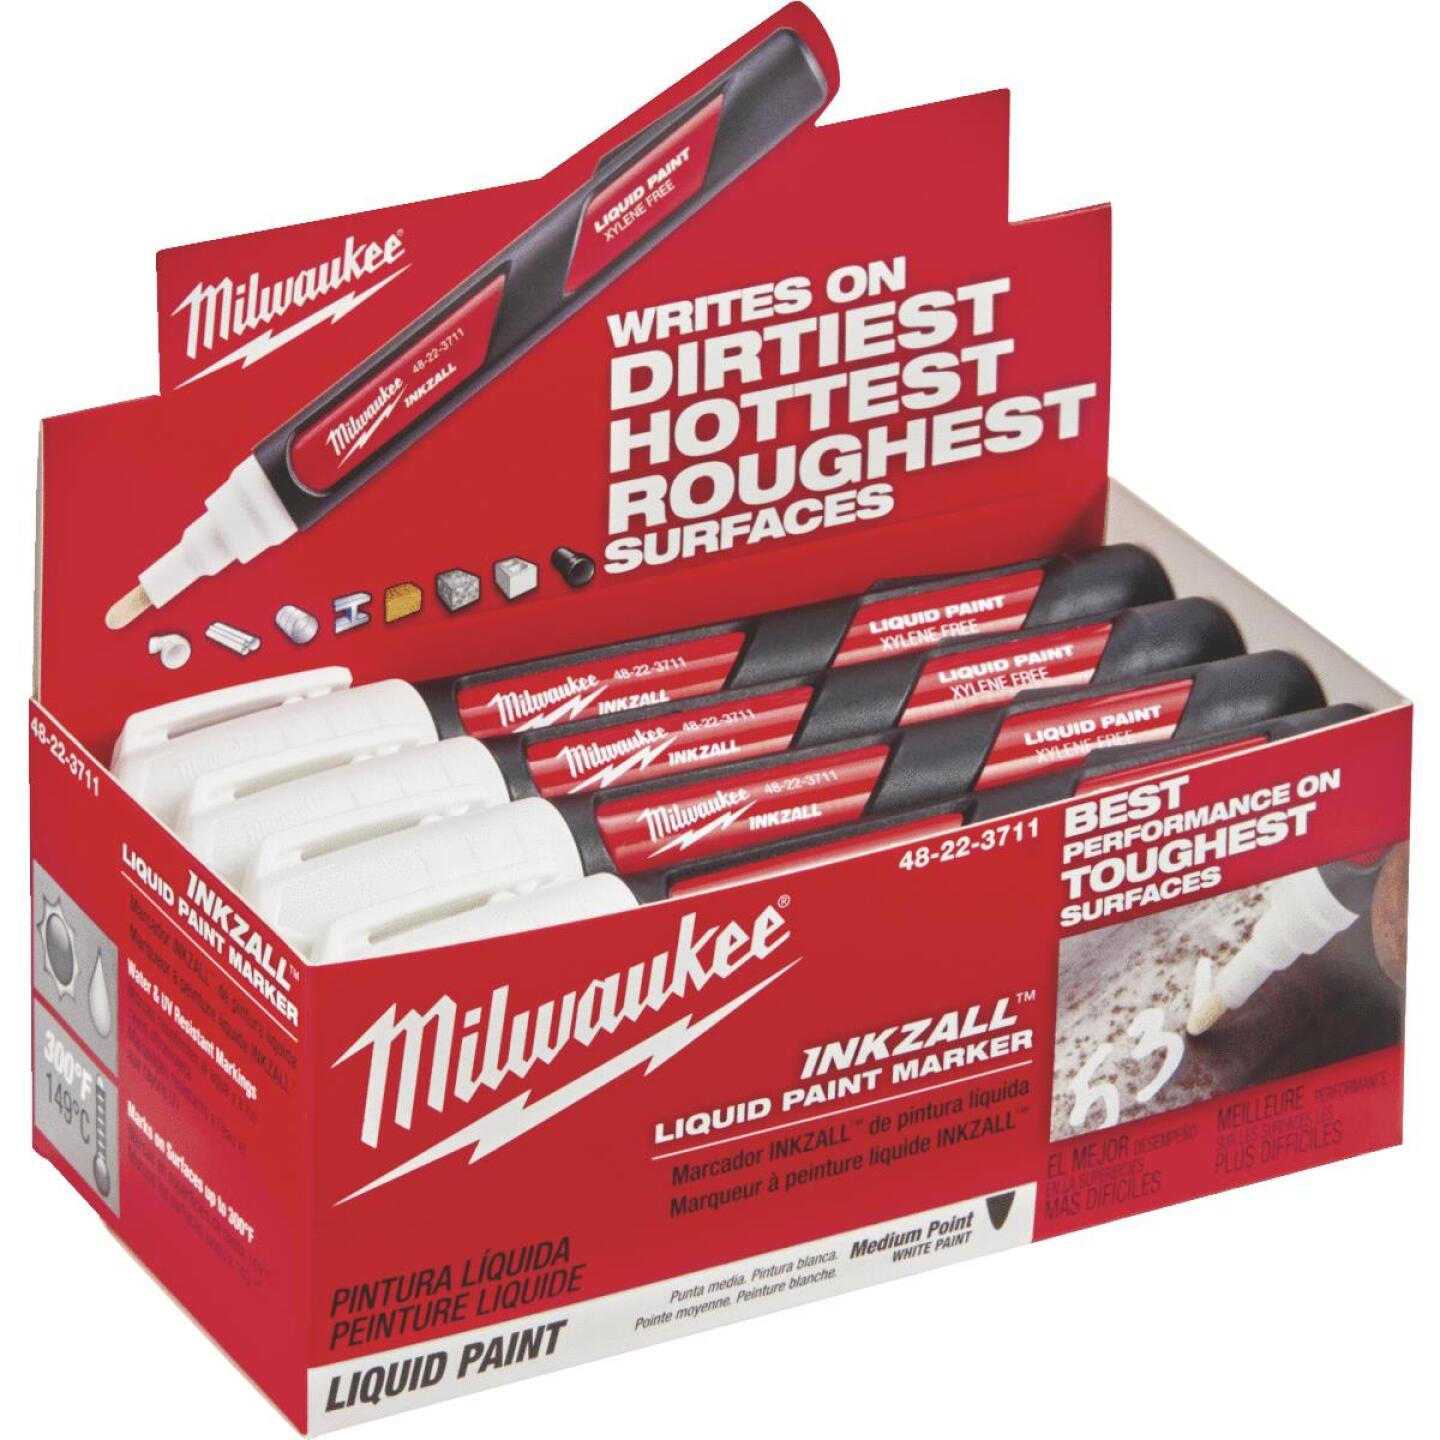 Milwaukee INKZALL Nib Point White Liquid Paint Job Site Marker Image 2